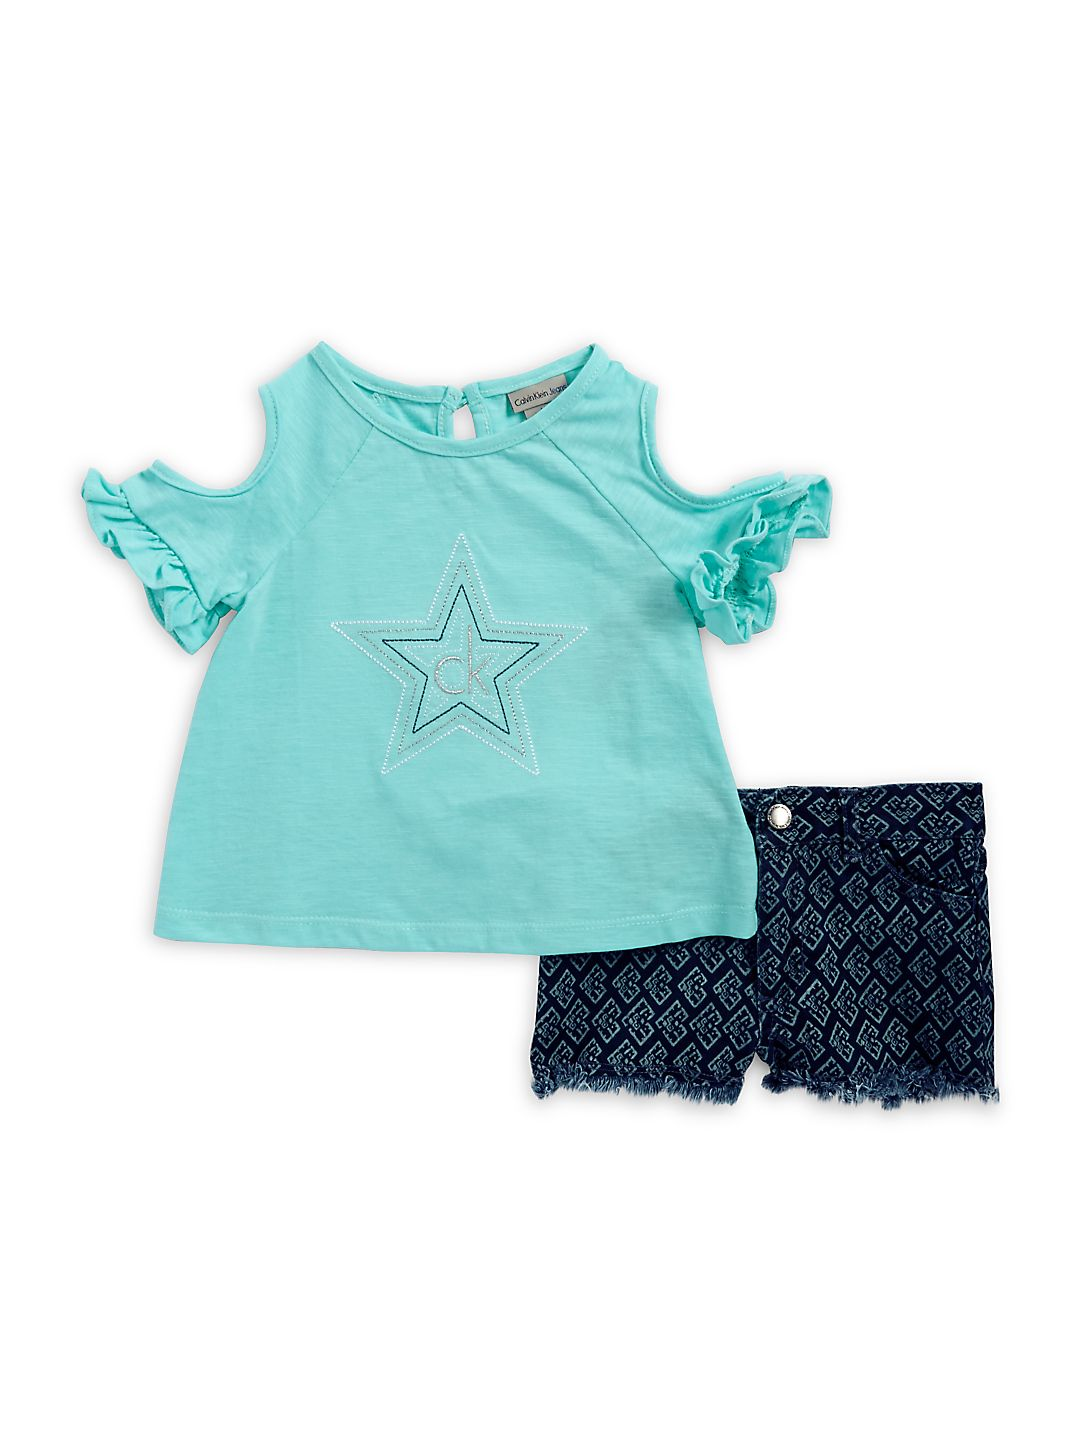 Little Girl's Two-Piece Cold-Shoulder Top and Shorts Set